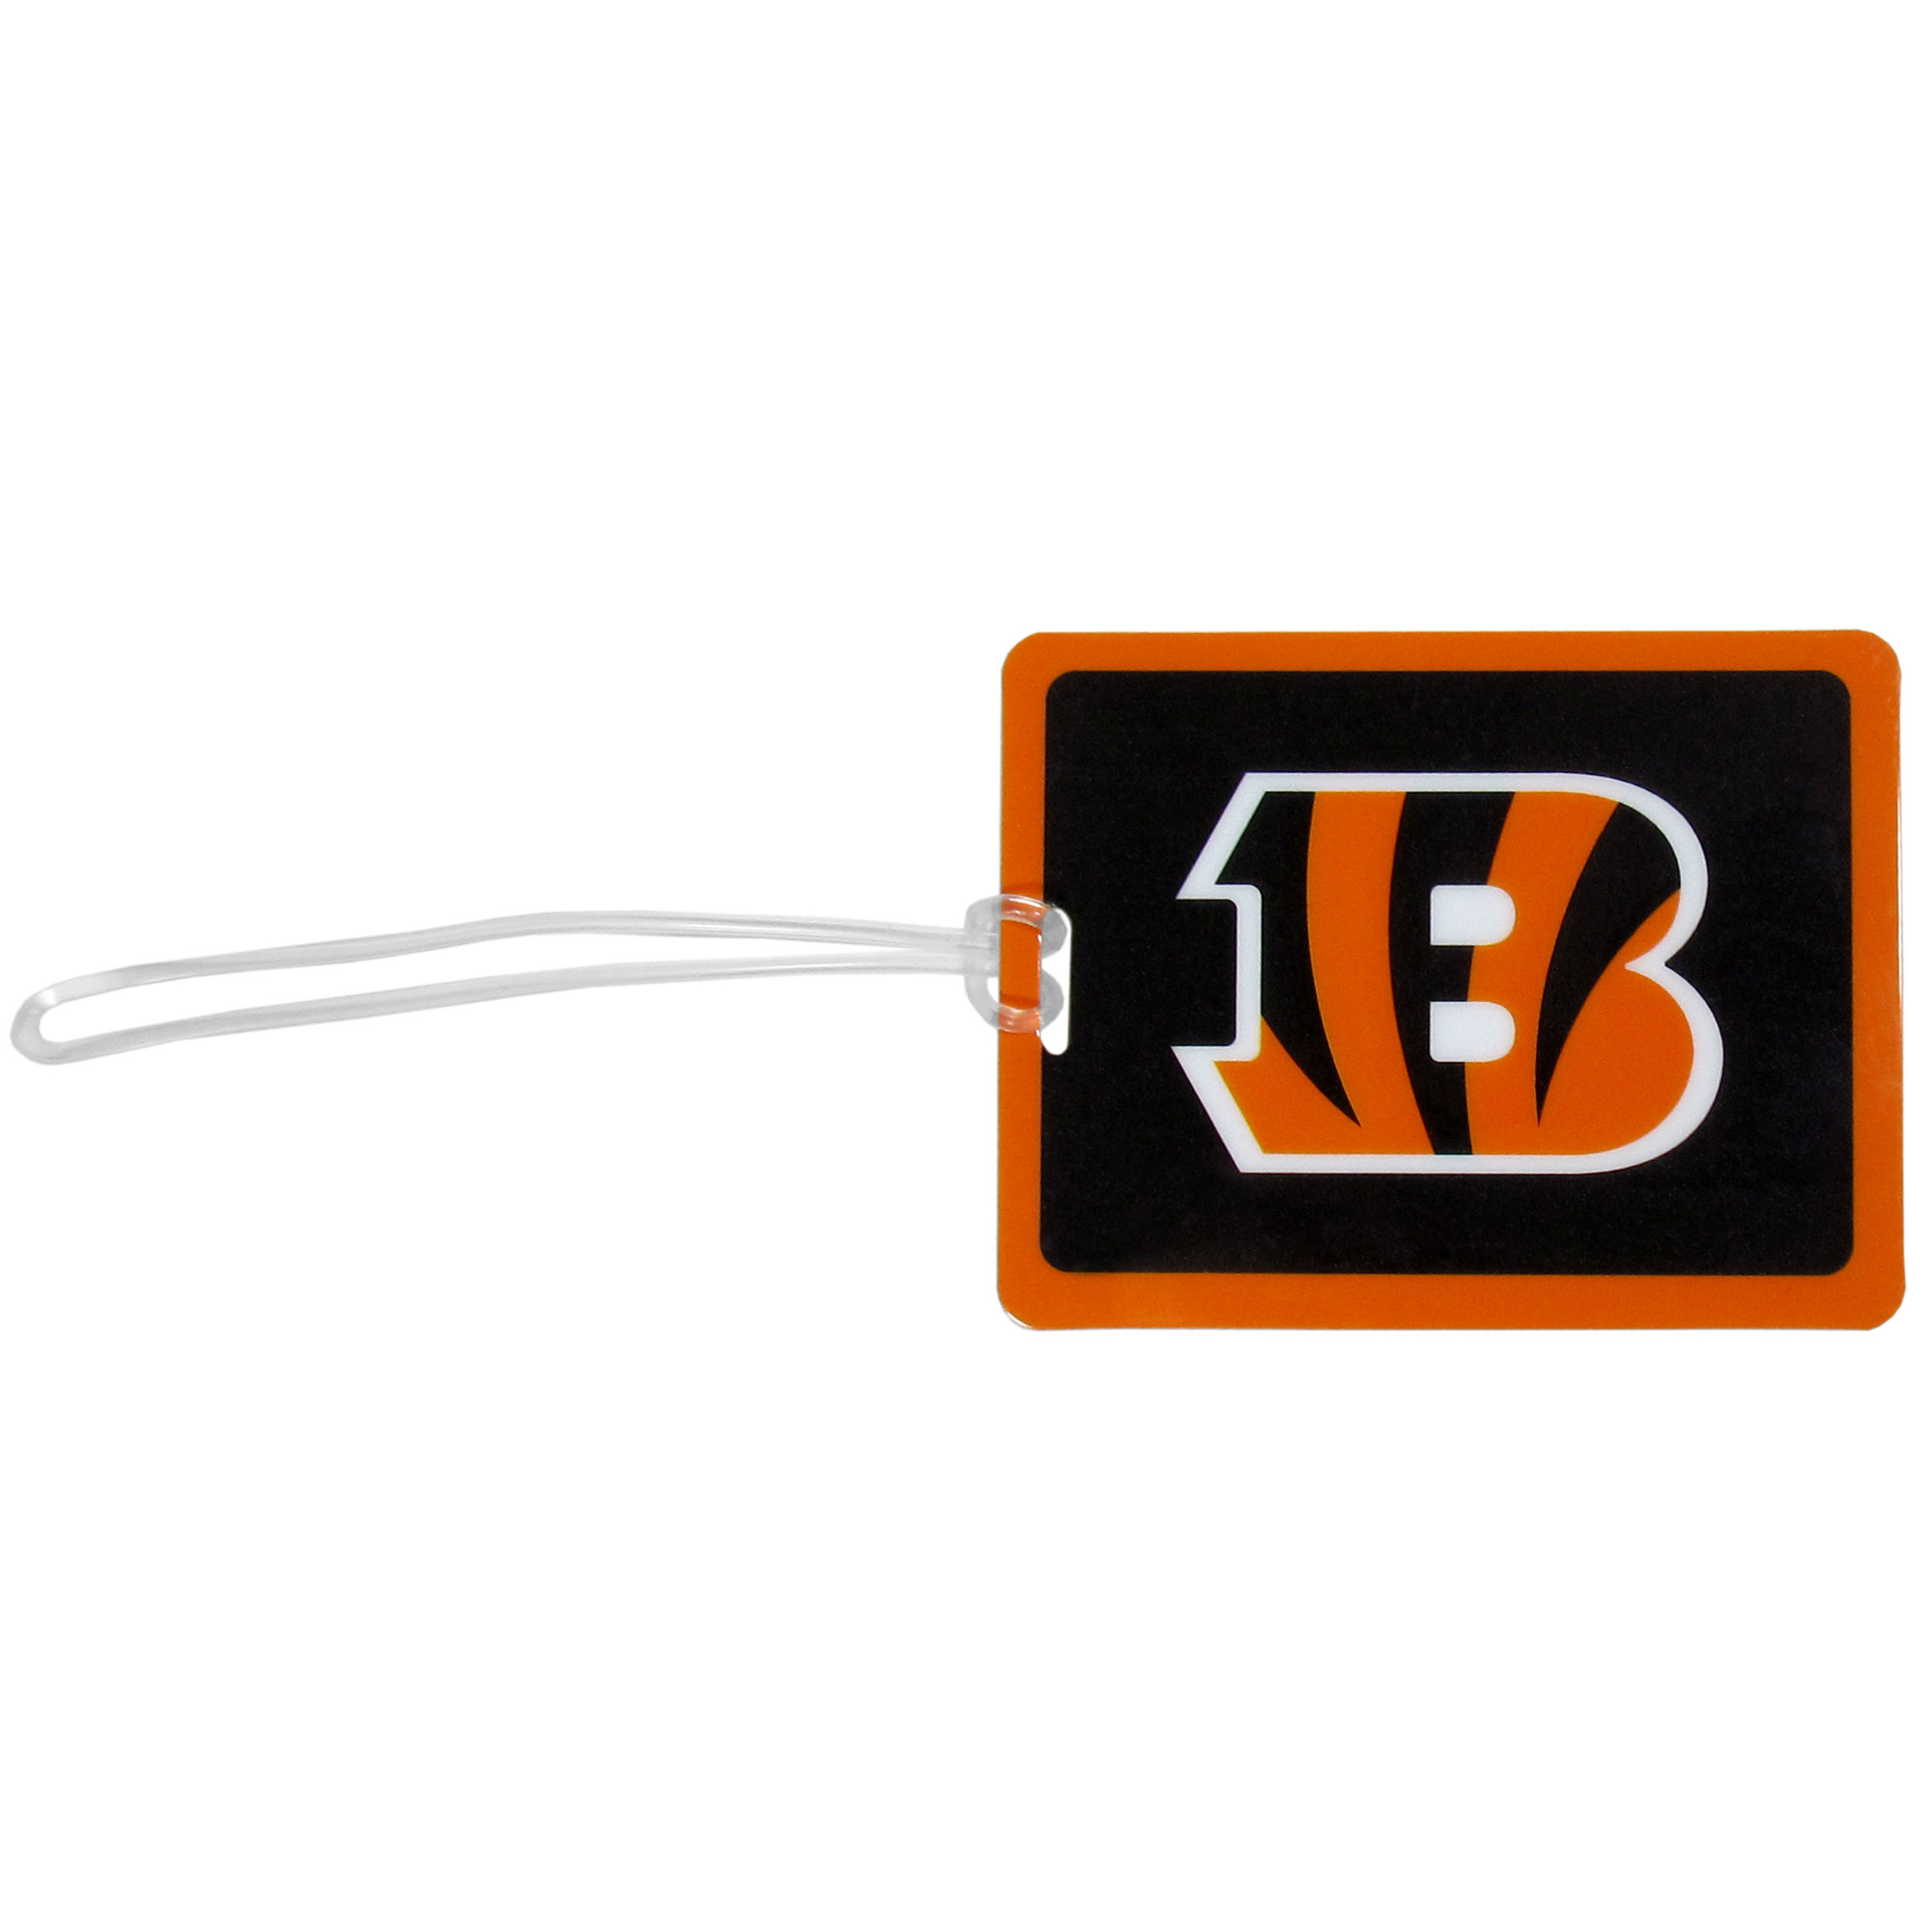 Cincinnati Bengals Vinyl Luggage Tag - Tired of trying to spot your suitcase or bag in a sea of luggage? Try our large and colorful Cincinnati Bengals luggage tag set. The tag is 4x3 inches and has a 5 inch cord to attach it easily to your bags, backpacks or luggage. The front of the tag features the team logo in a bright, team colored background and you can write you name, address and phone number on the back of the tag.